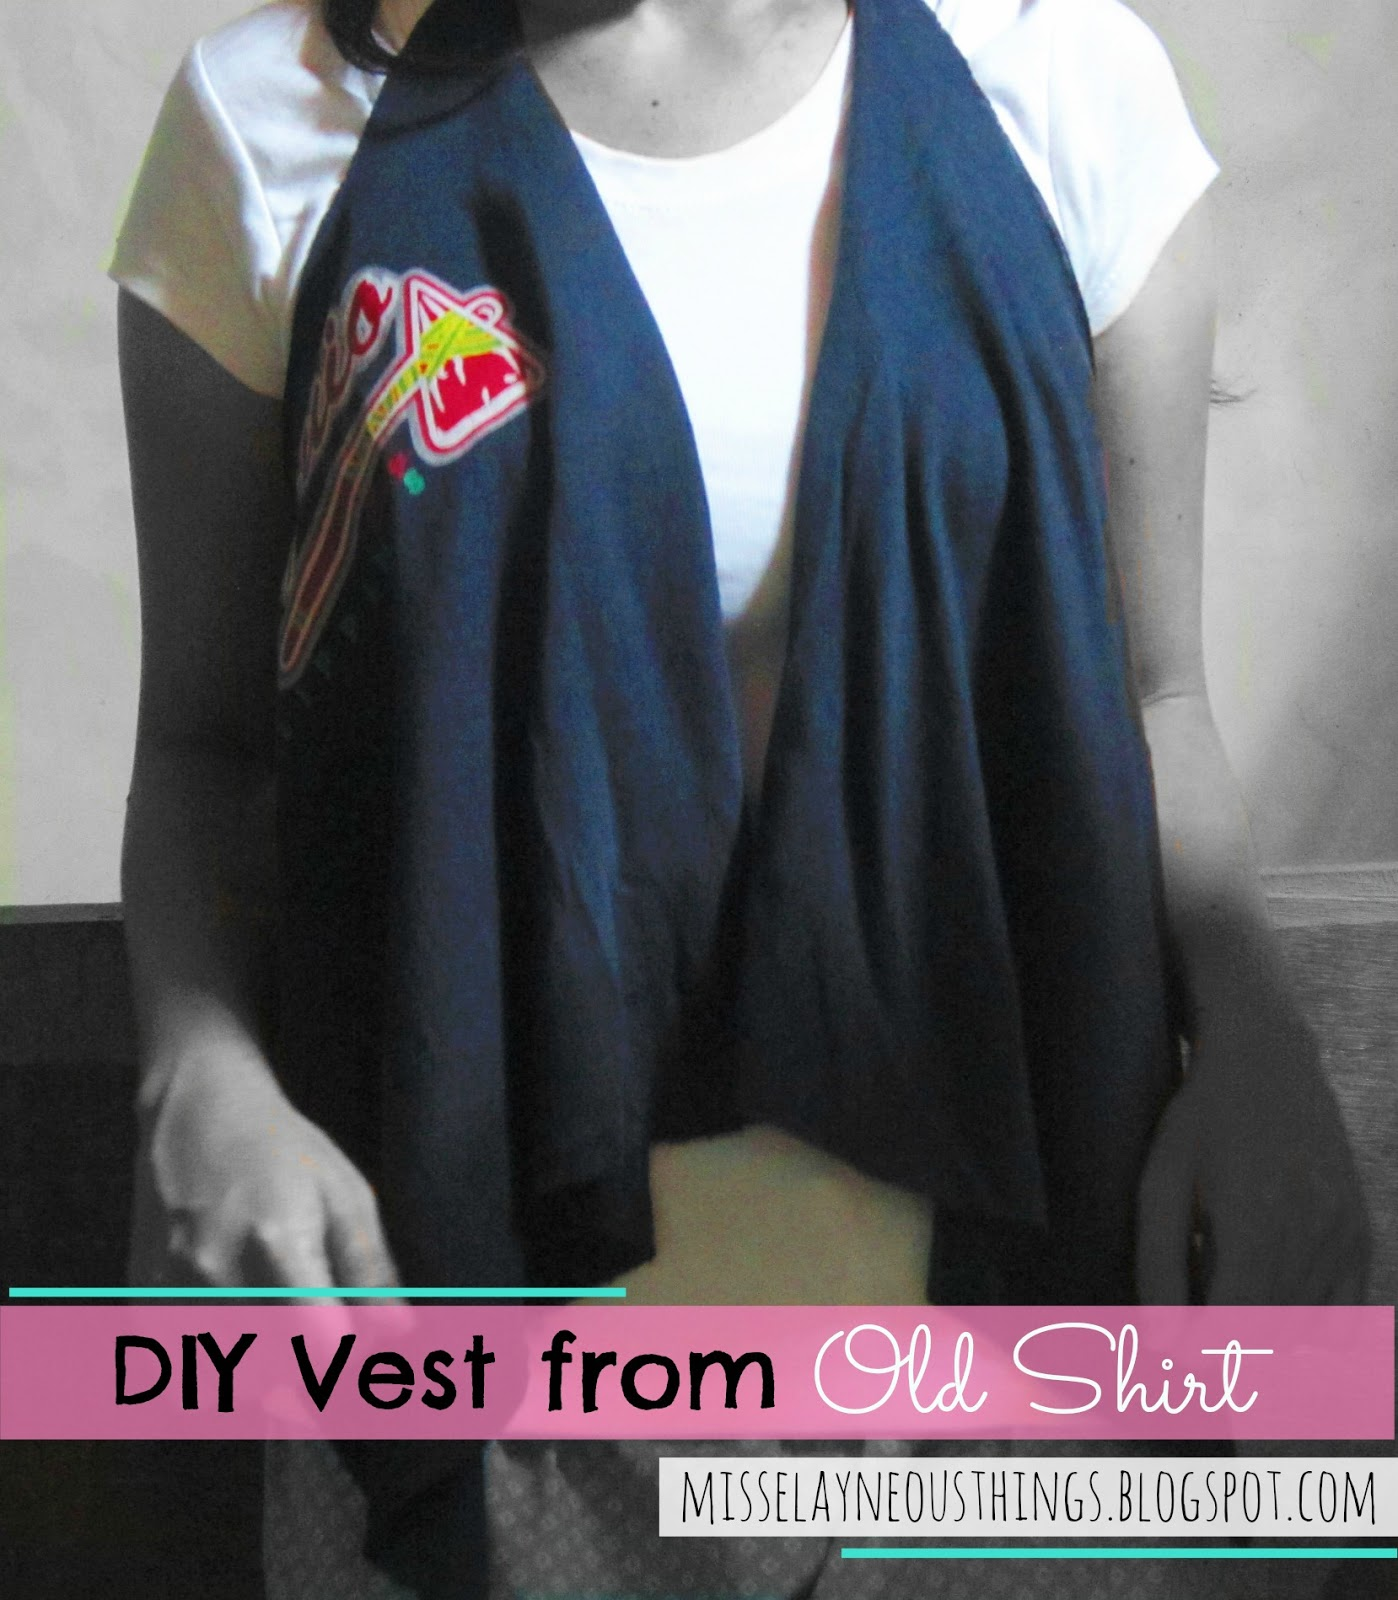 DIY Vest from Old Shirt - A Blog about Misselayneous Things